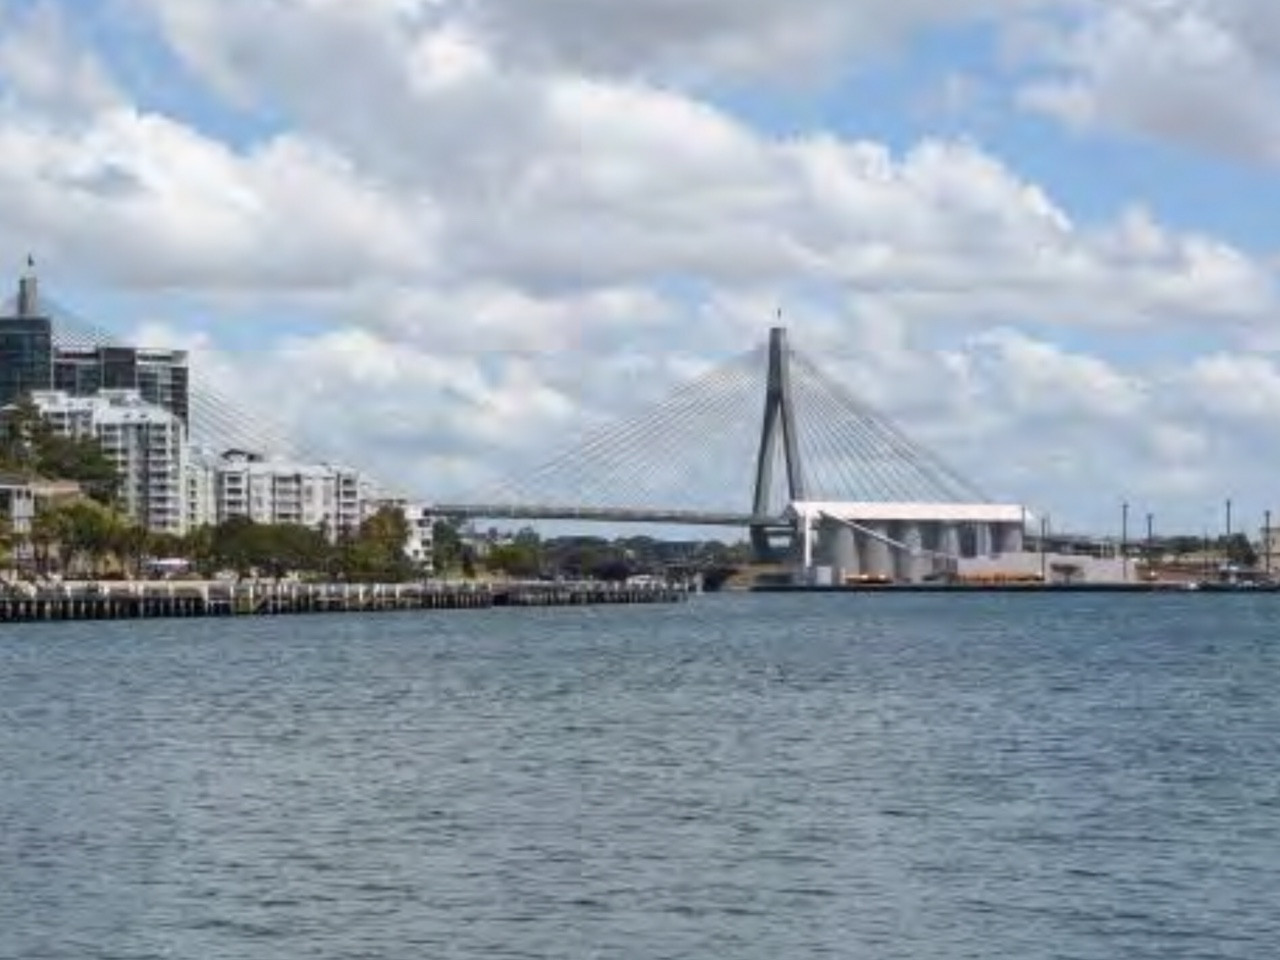 Potential view of Glebe Island